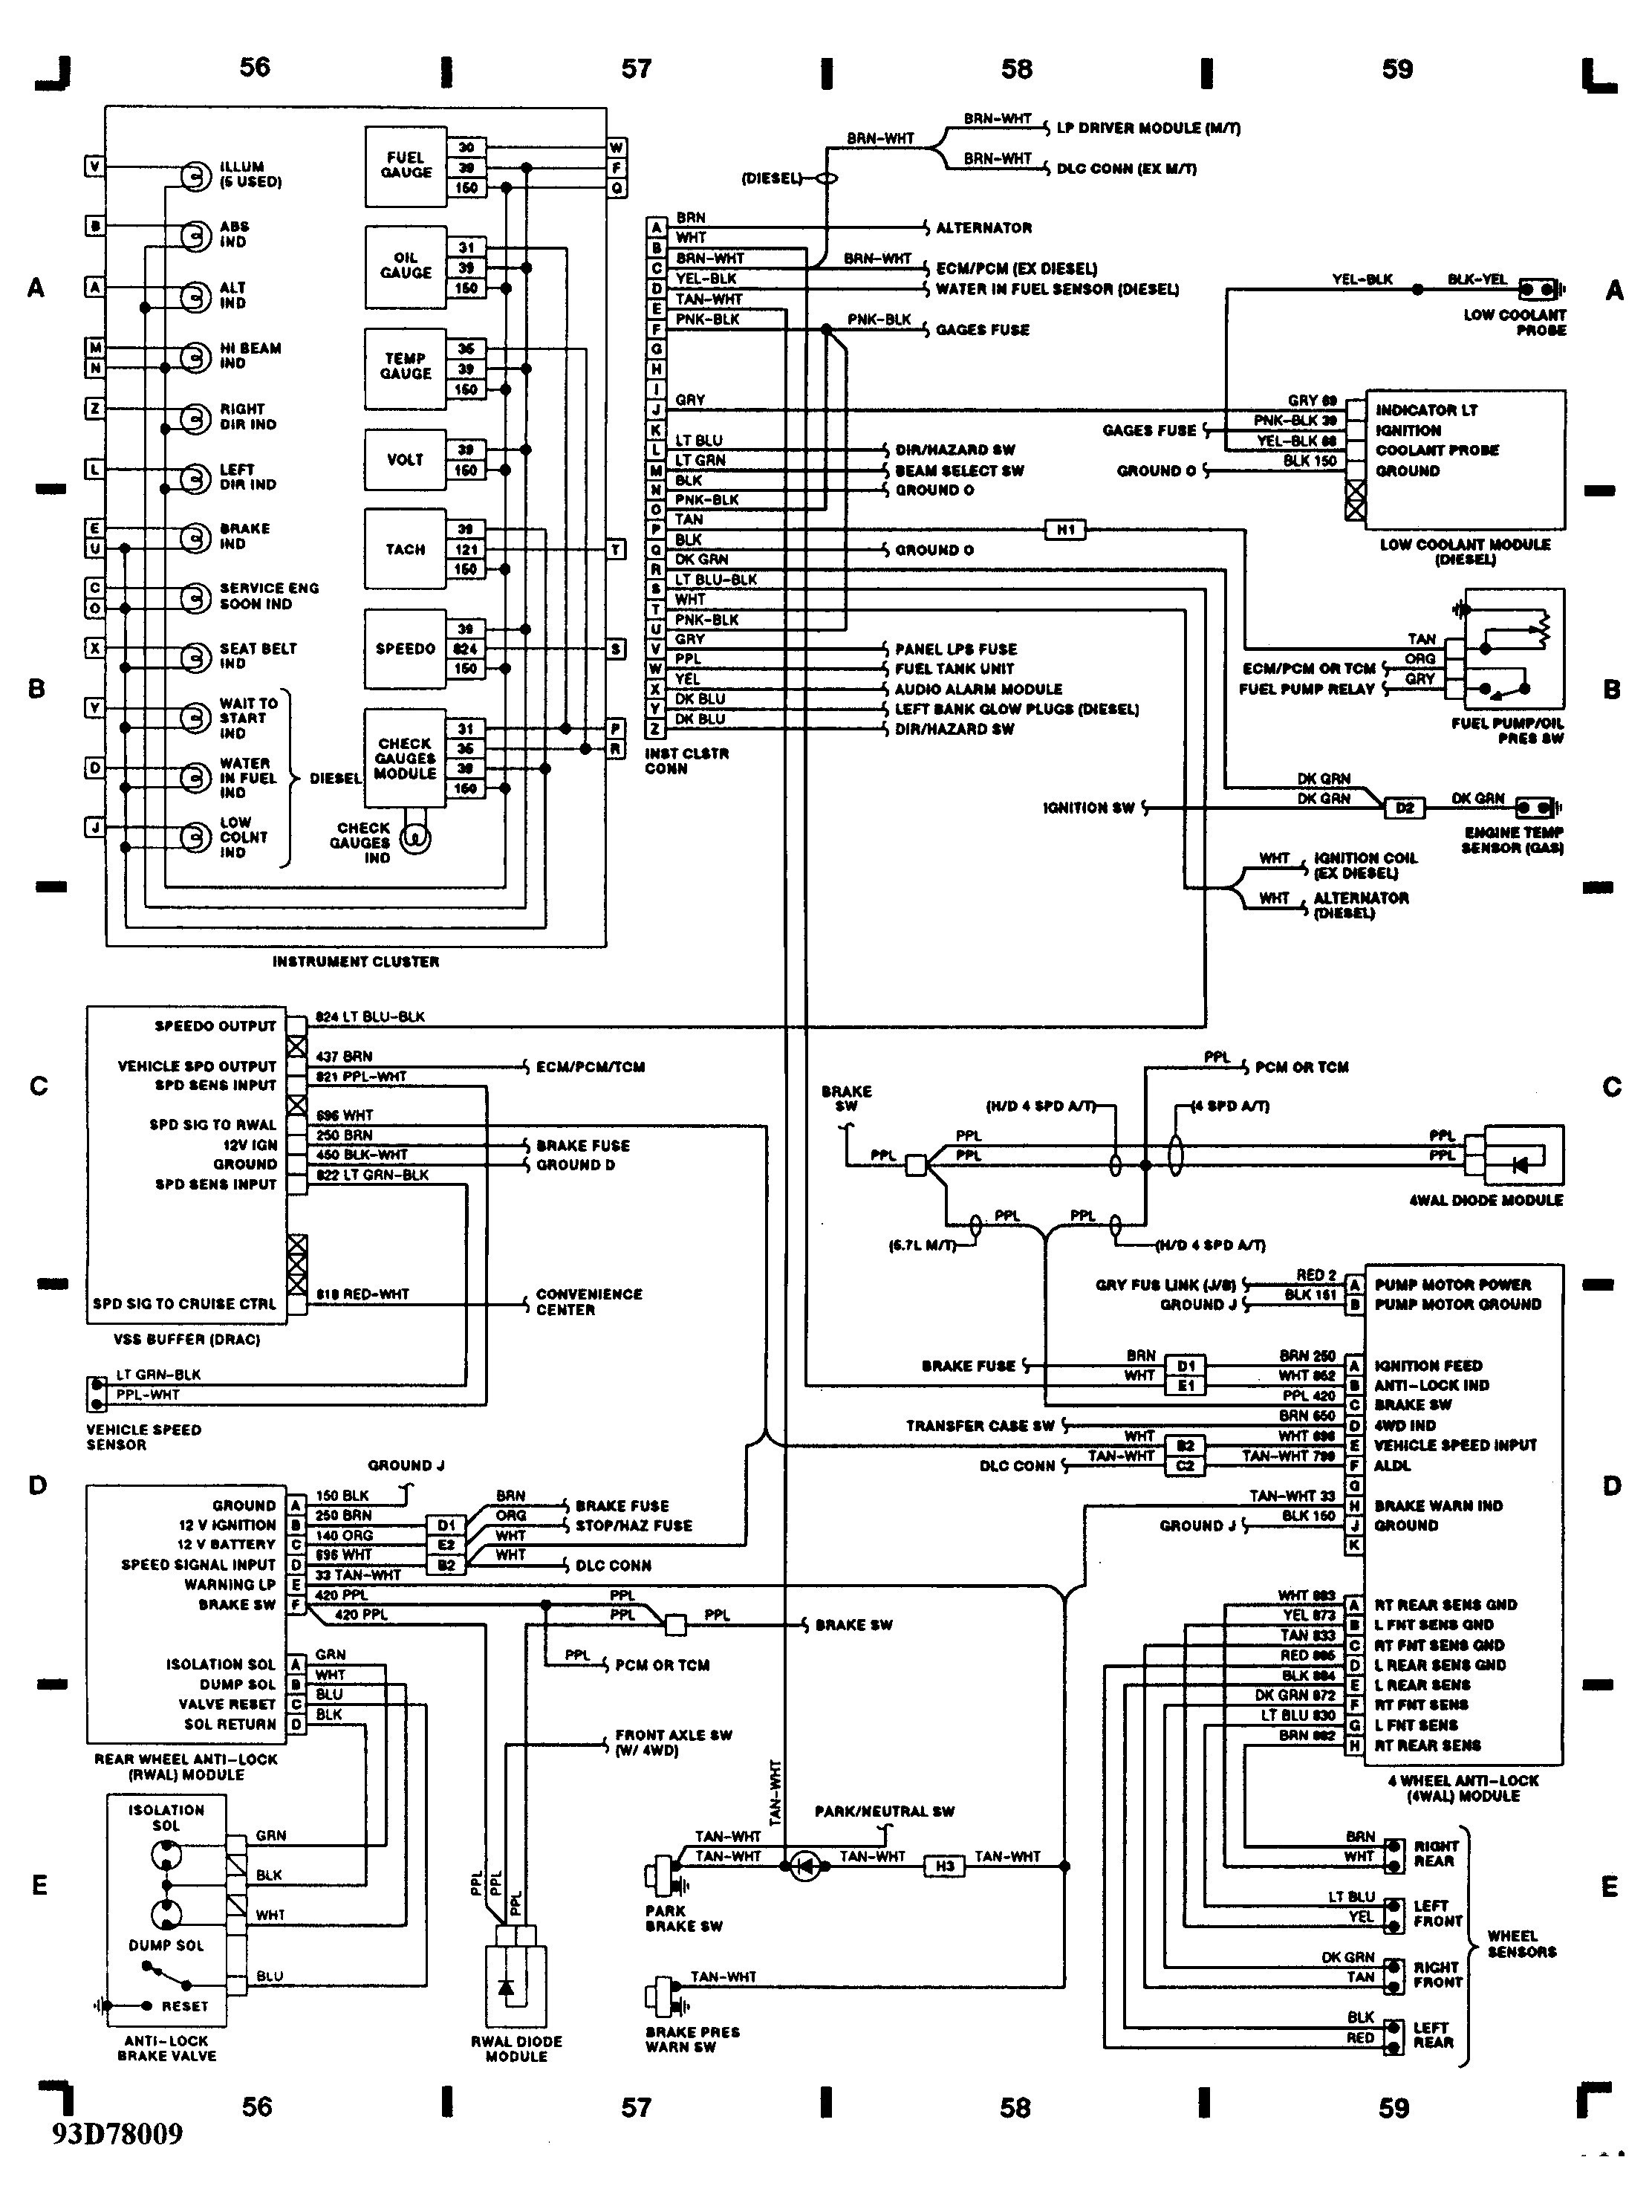 Chevy 5 7 Spider Injector Wiring Diagram Wiring Diagram Camaro A Camaro A Graniantichiumbri It